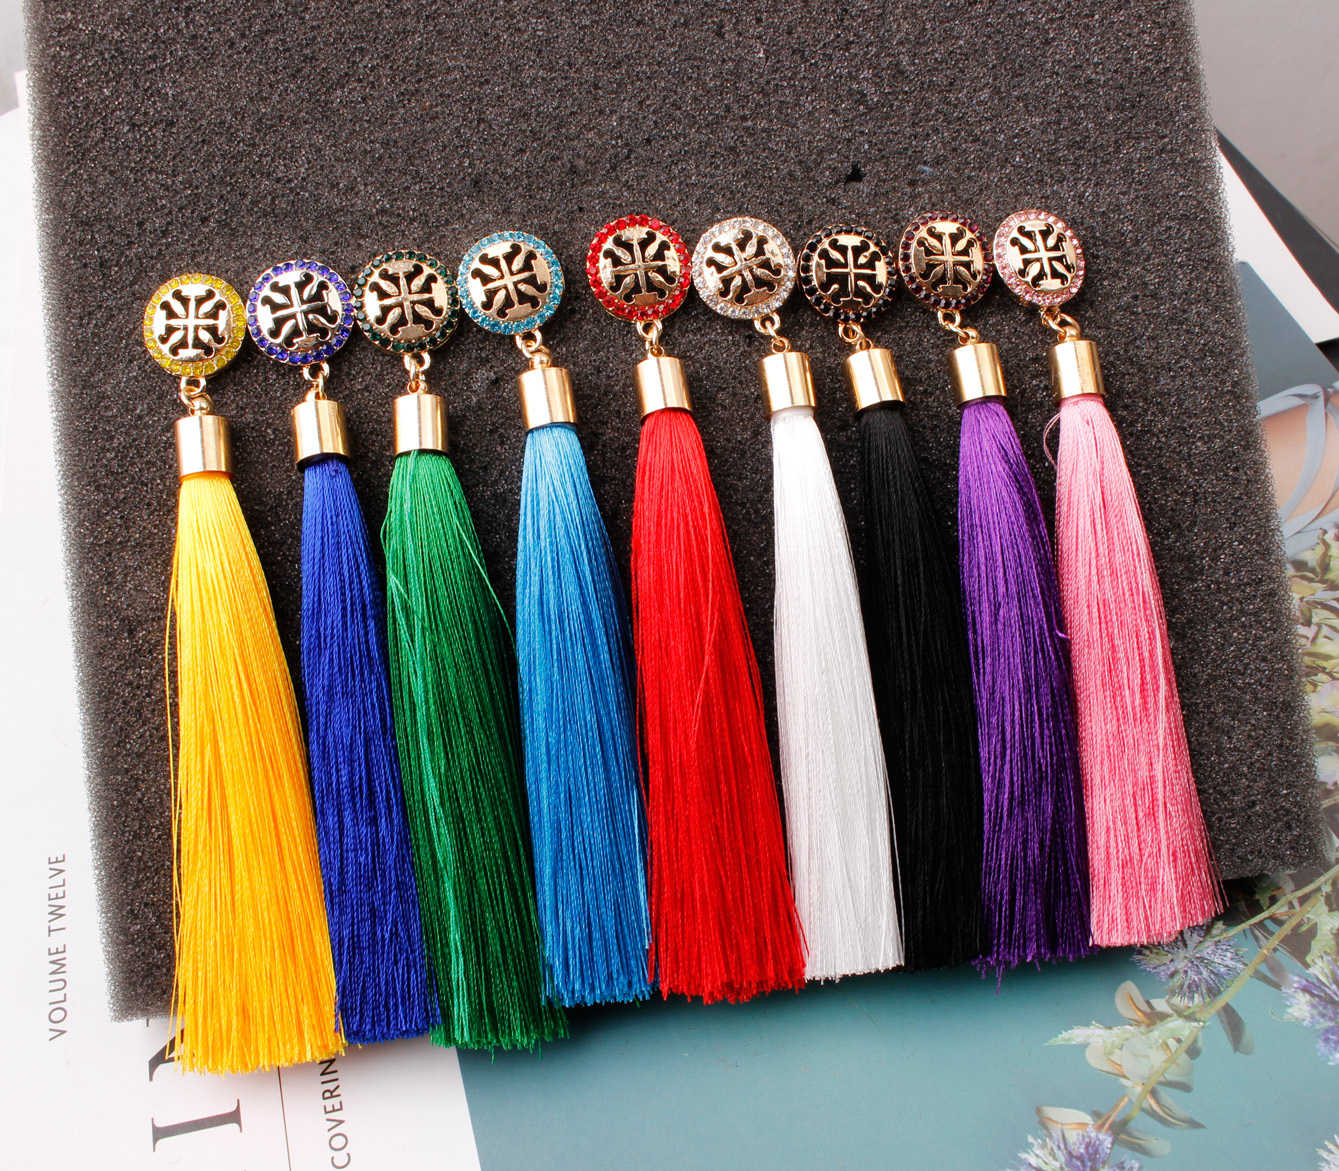 New Vintage Top Quality Handmade Bohemian Luxury Ethnic Hanging Rope Tassel Earrings For Women Girl Party Trendy Statement Gifts